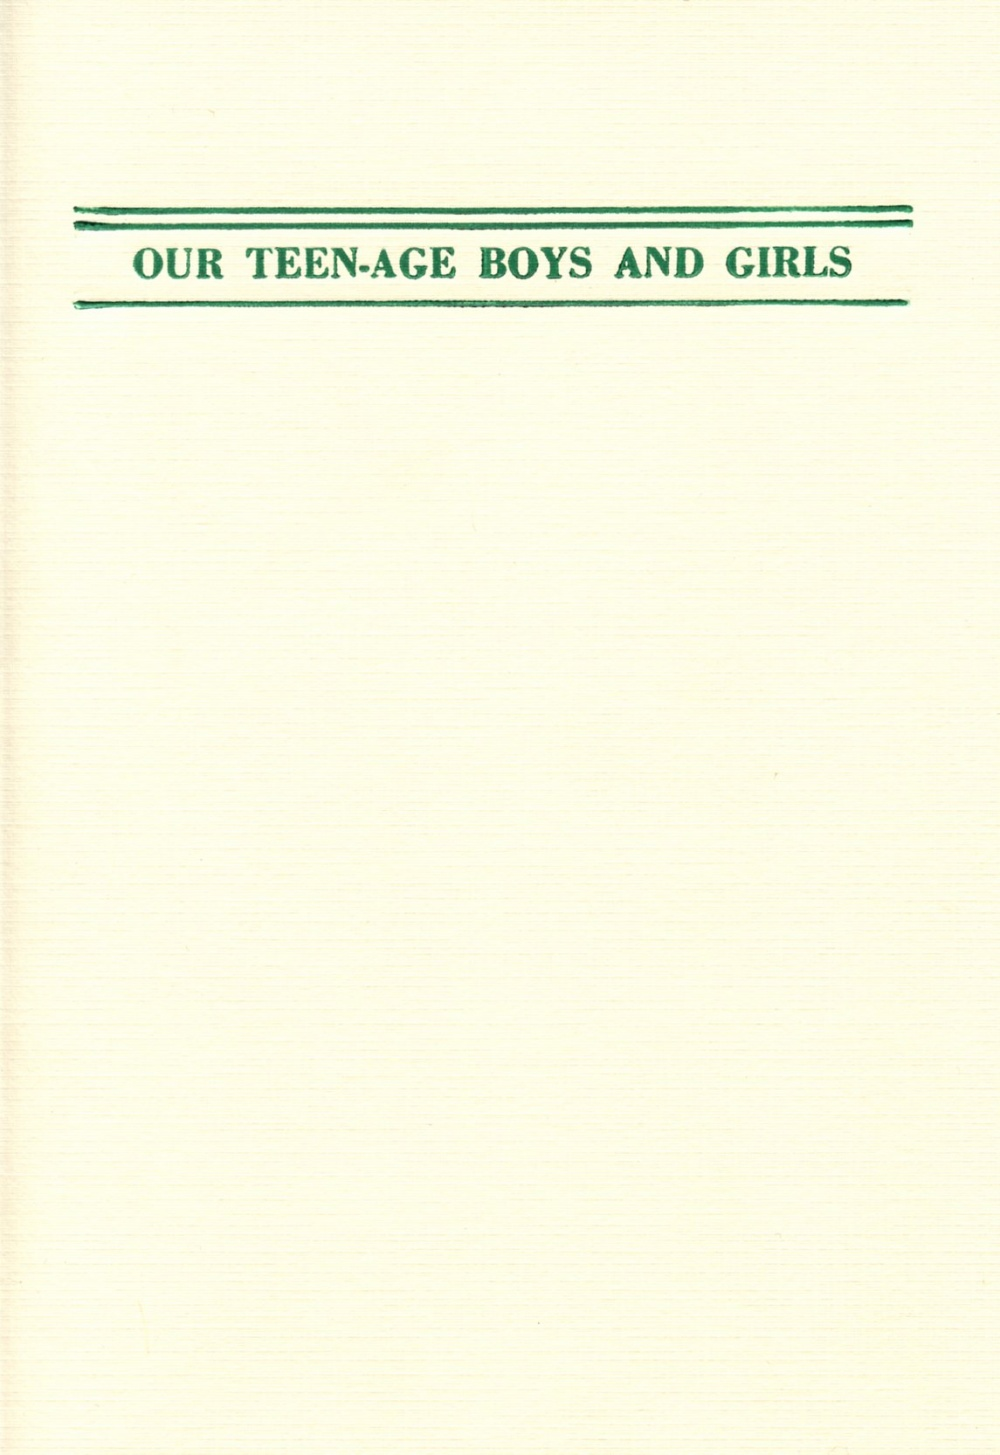 Our Teen-age Boys & Girls